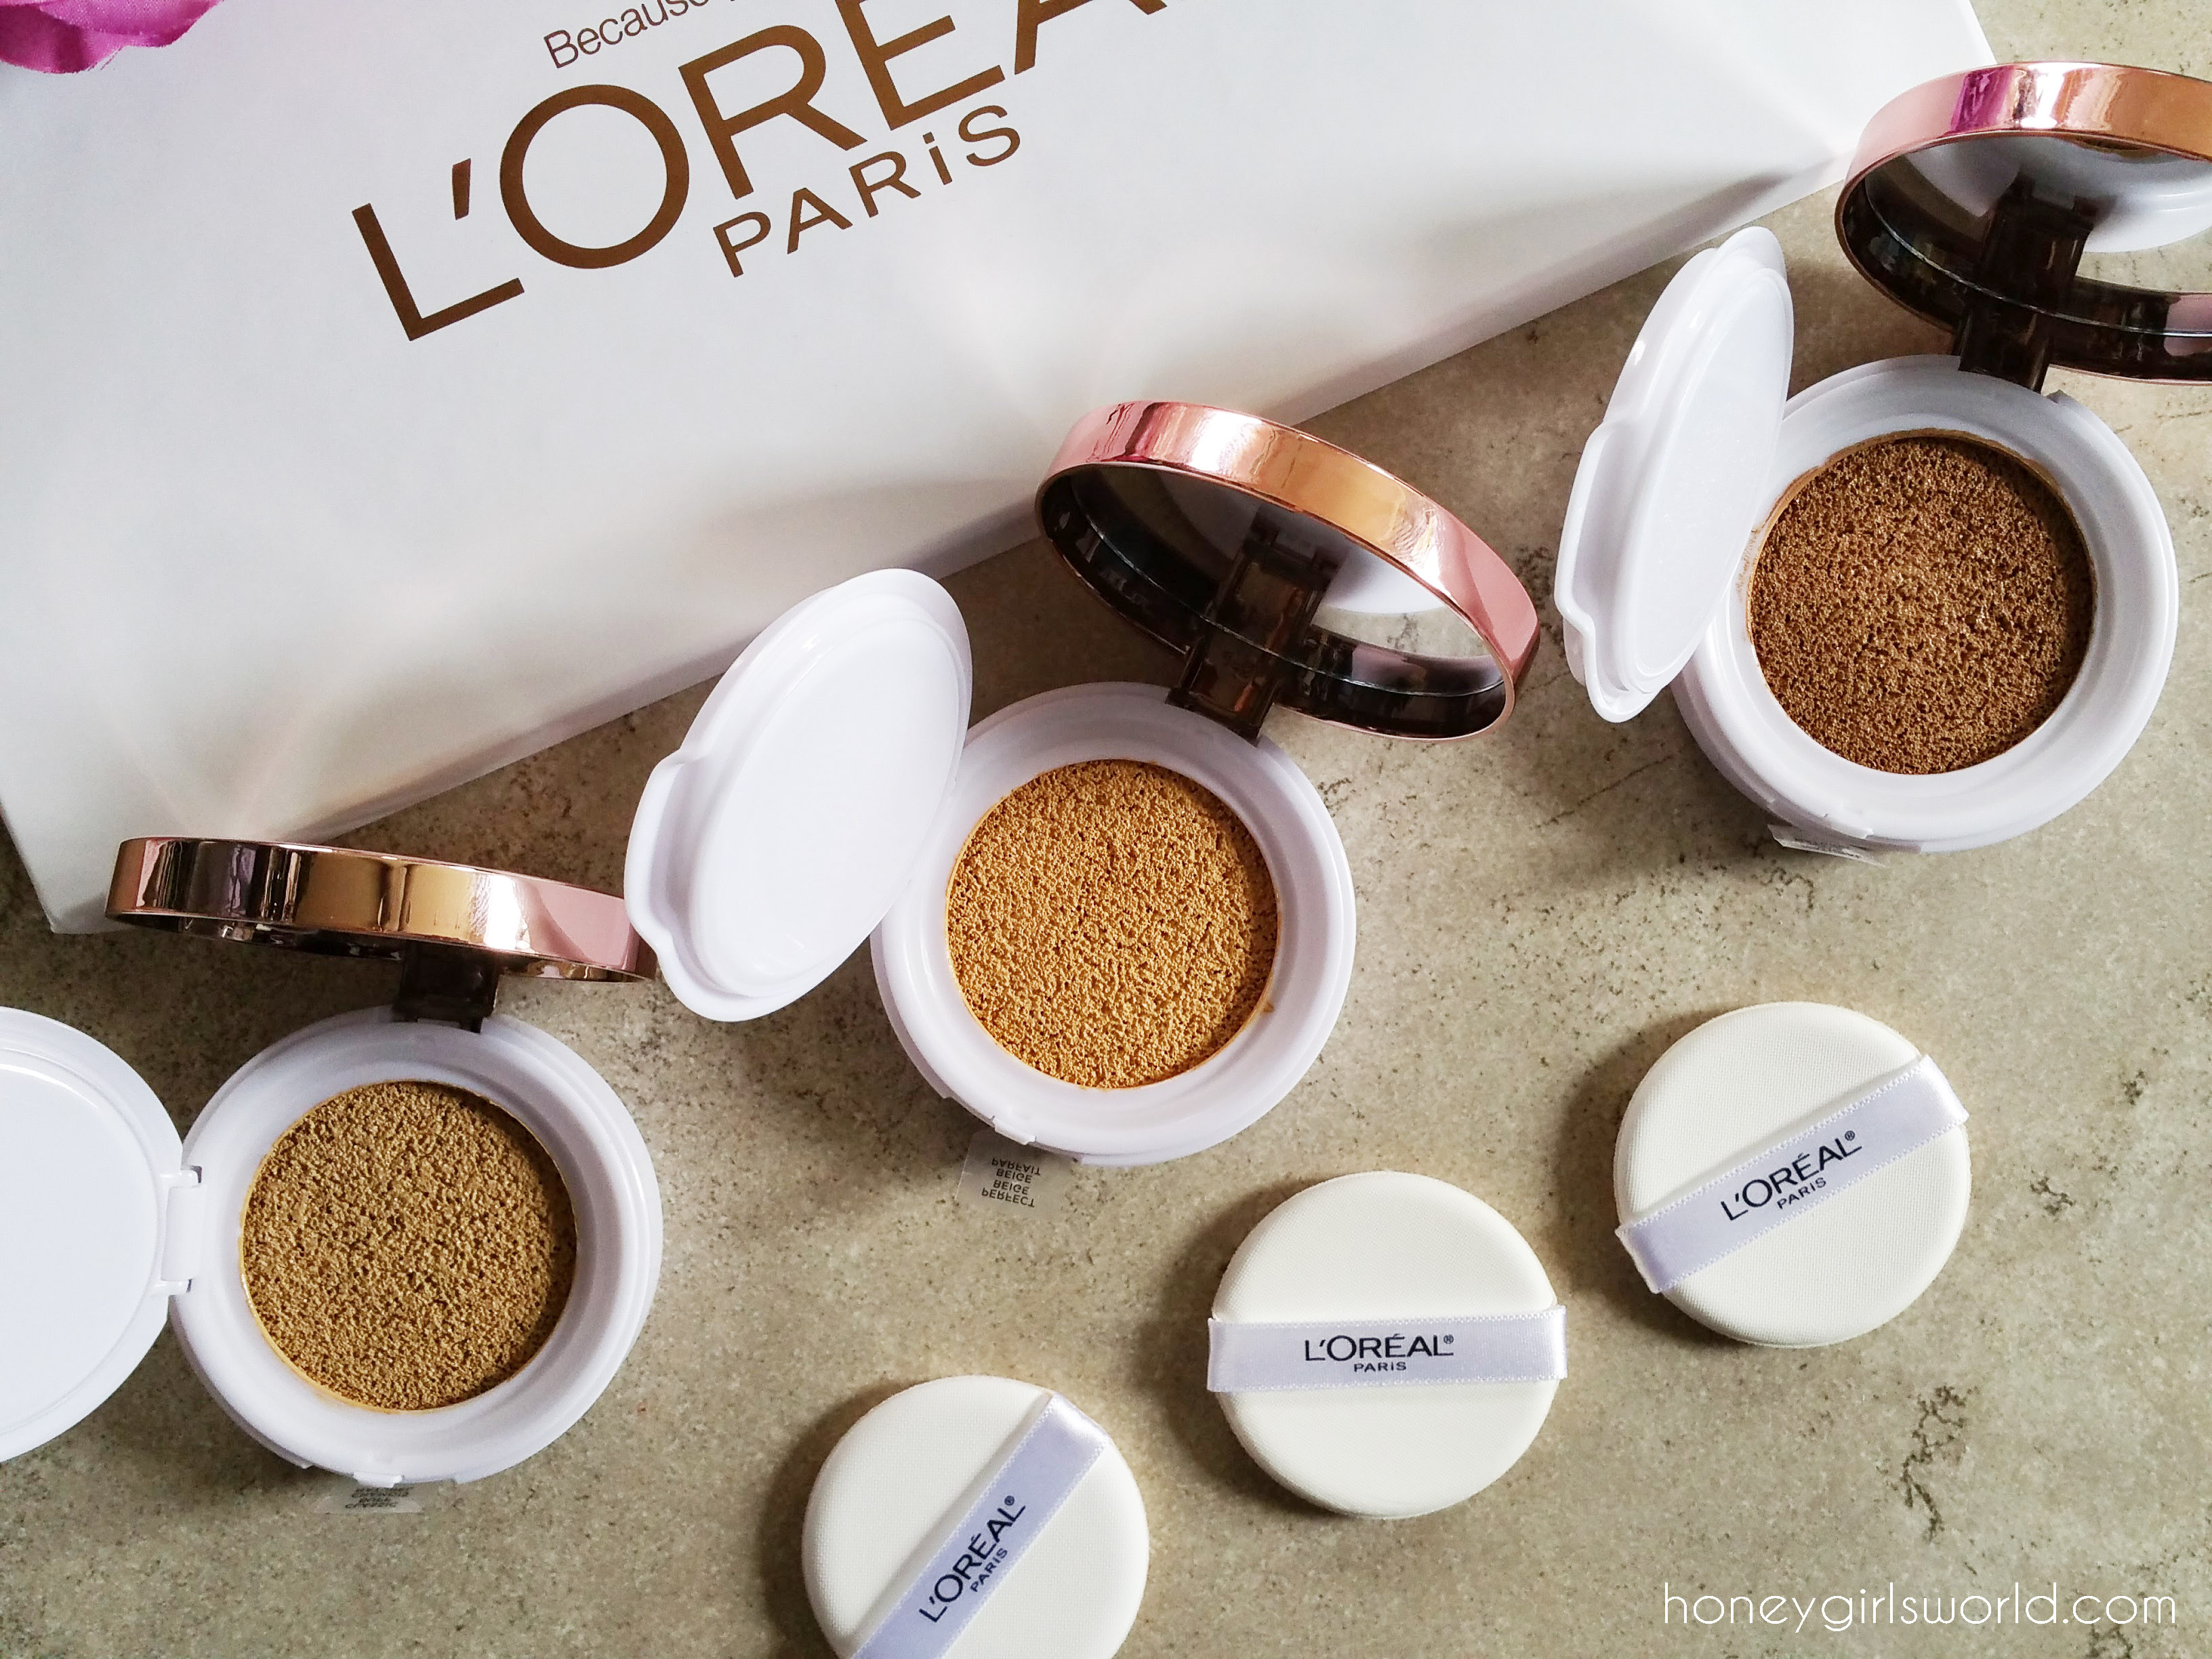 L'Oreal, L'Oreal True Match, L'Oreal True Match Lumi Cushion, L'Oreal True Match Lumi Cushion Buikdable luminous foundation, foundation, face, beauty, review, beauty product, swatches,